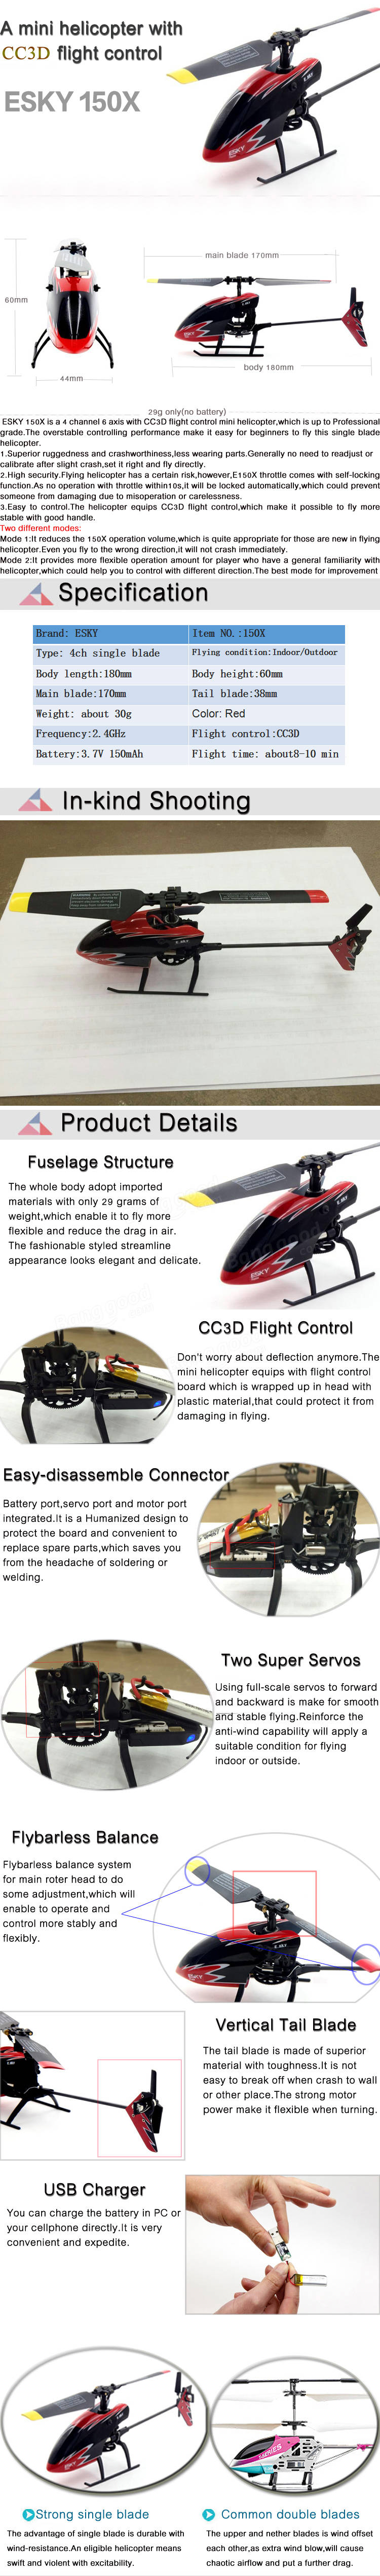 esky 150x 2 4g 4ch mini 6 axis gyro flybarless rc helicopter esky 150x 2 4g 4ch mini 6 axis gyro flybarless rc helicopter cc3d